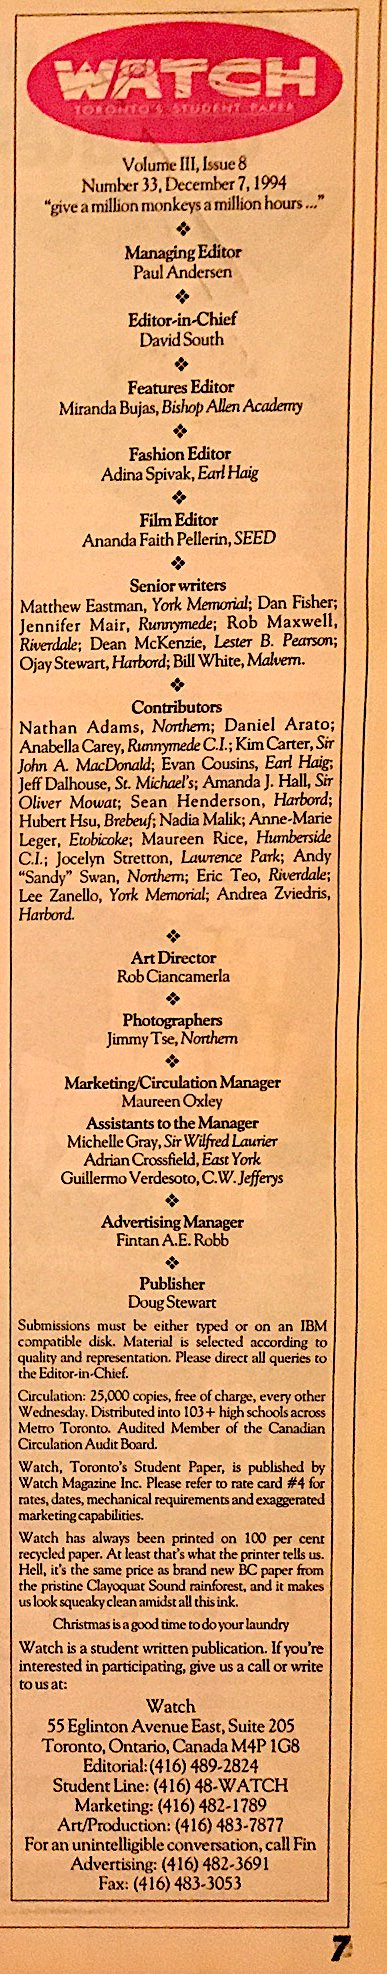 Watch Magazine masthead 1994